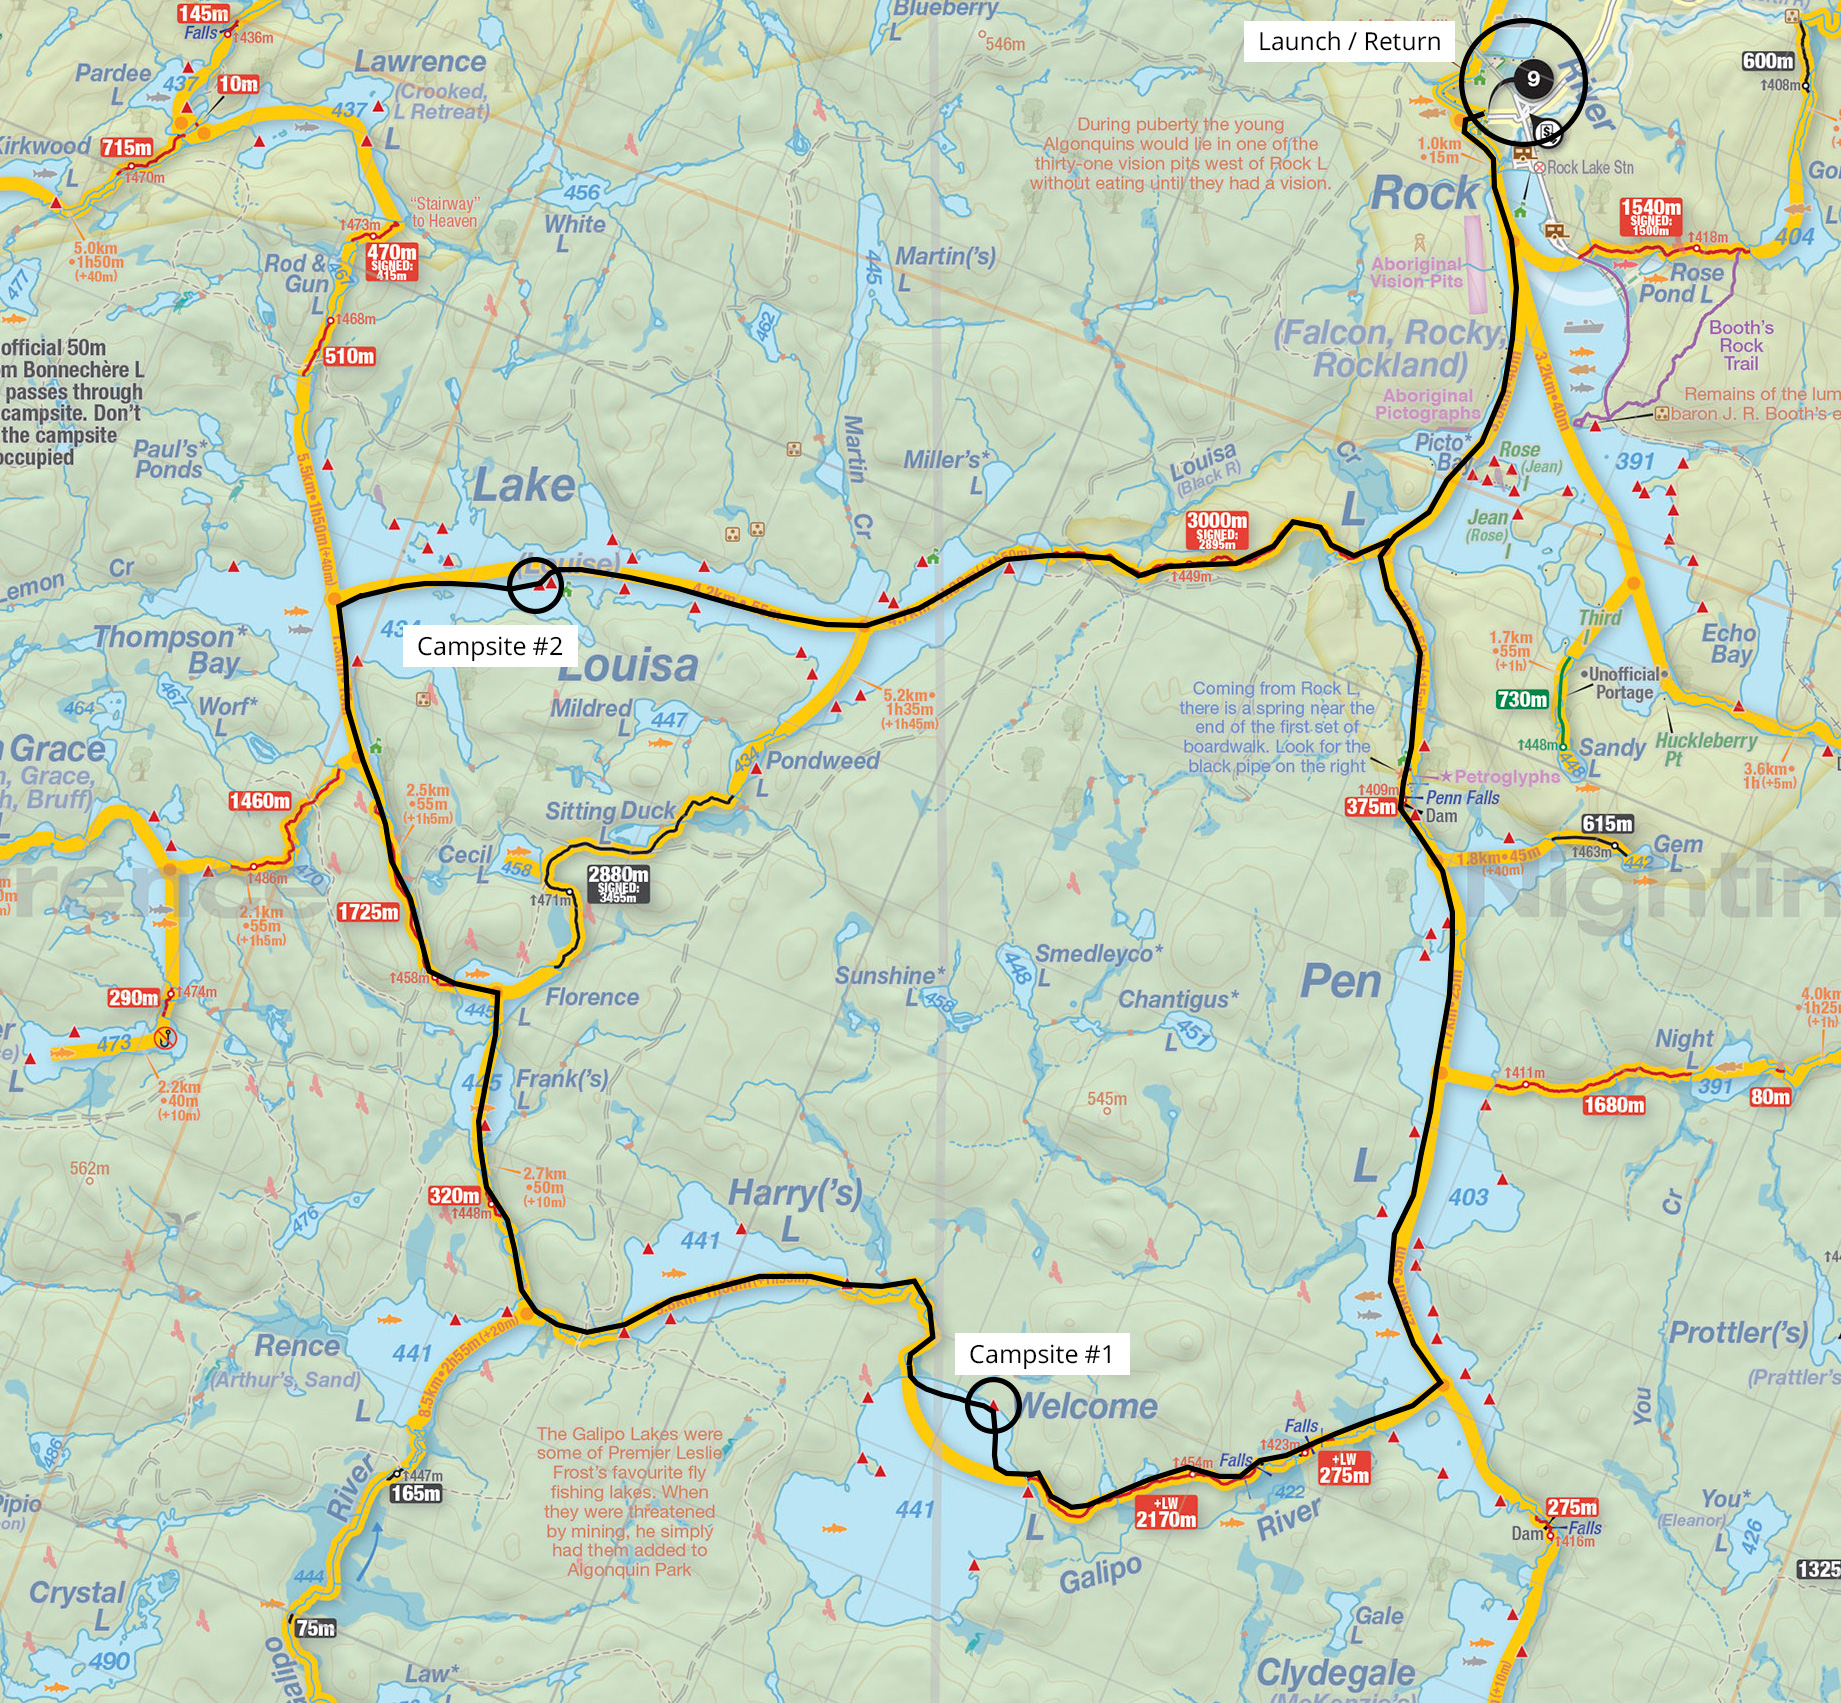 Map of trip details and campsites for Welcome to Louisa trip report in Algonquin Park